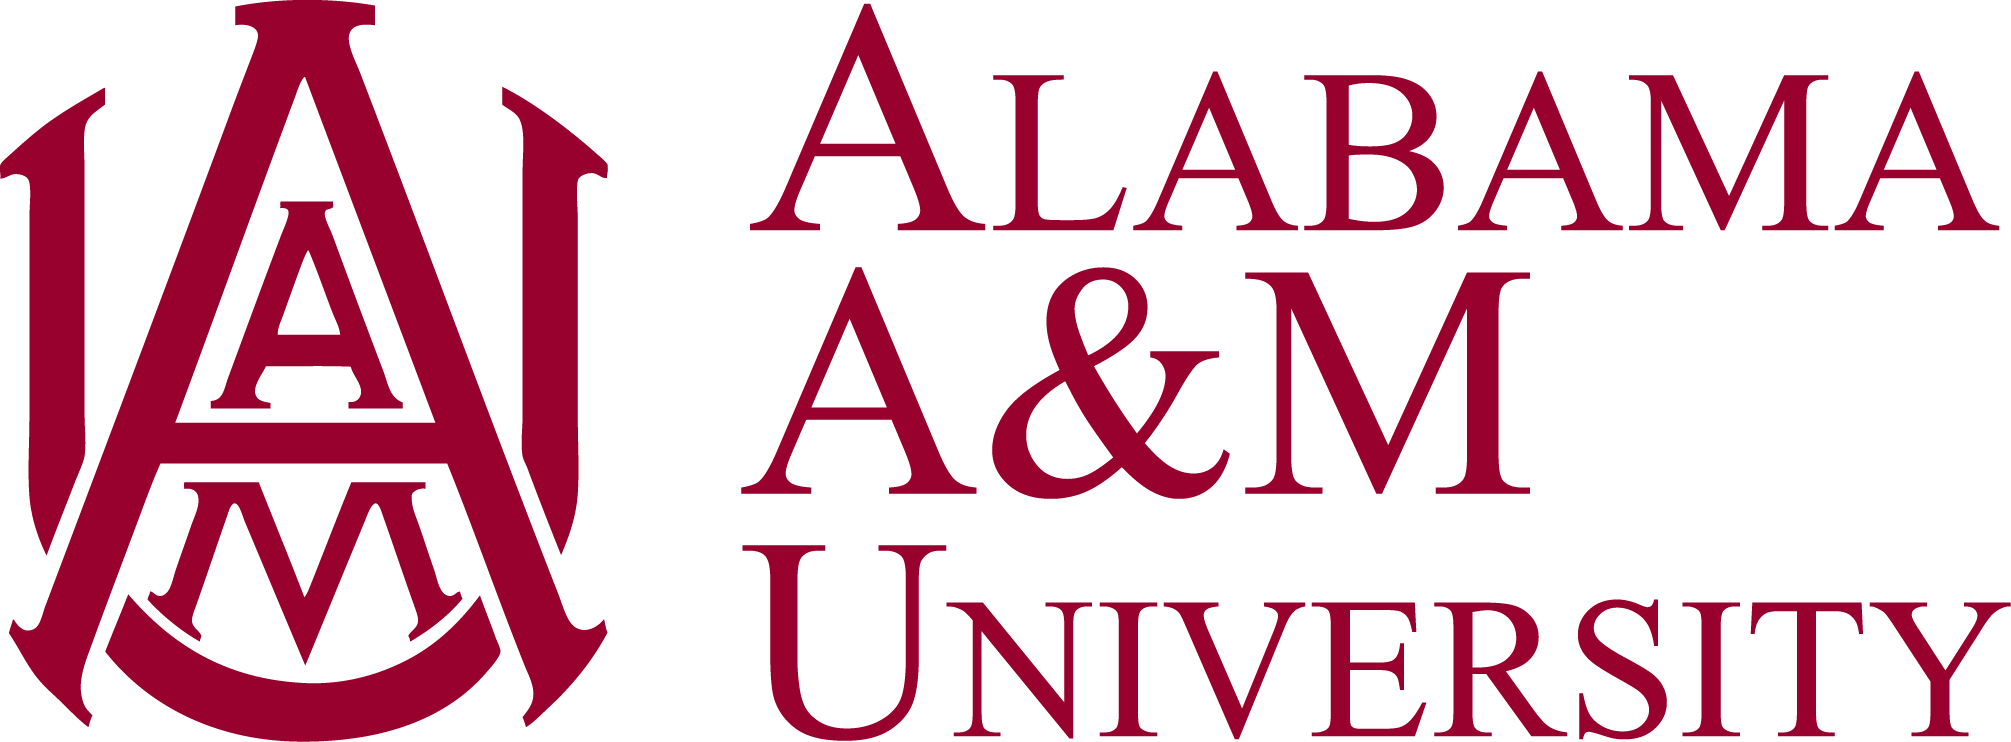 Alabama A&M University stacked logo